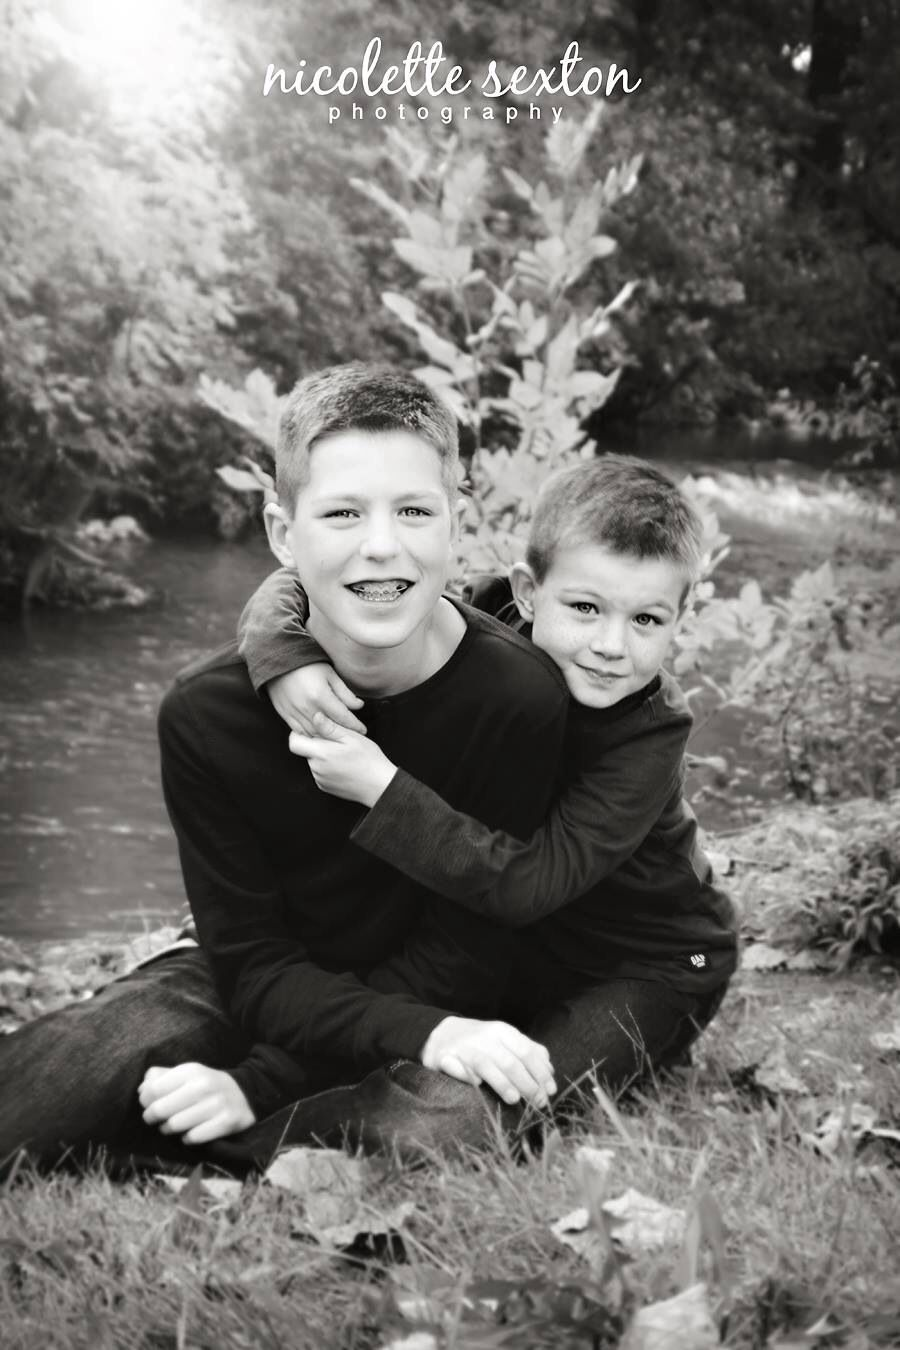 Brothers   Silbling Pose   Black and White   Ellis Family   September 2013   Outdoor Family Photography